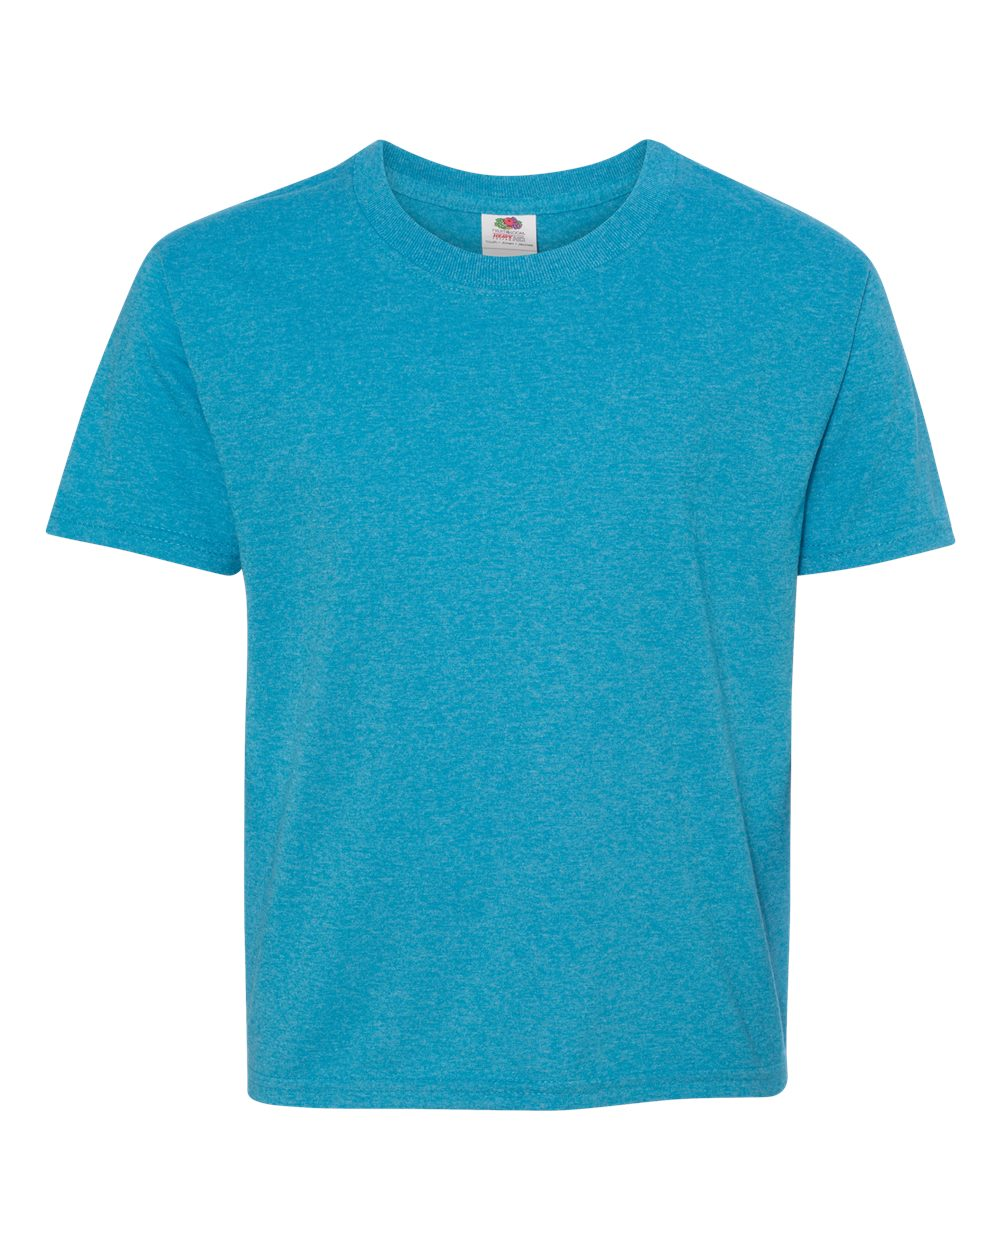 click to view Turquoise Heather